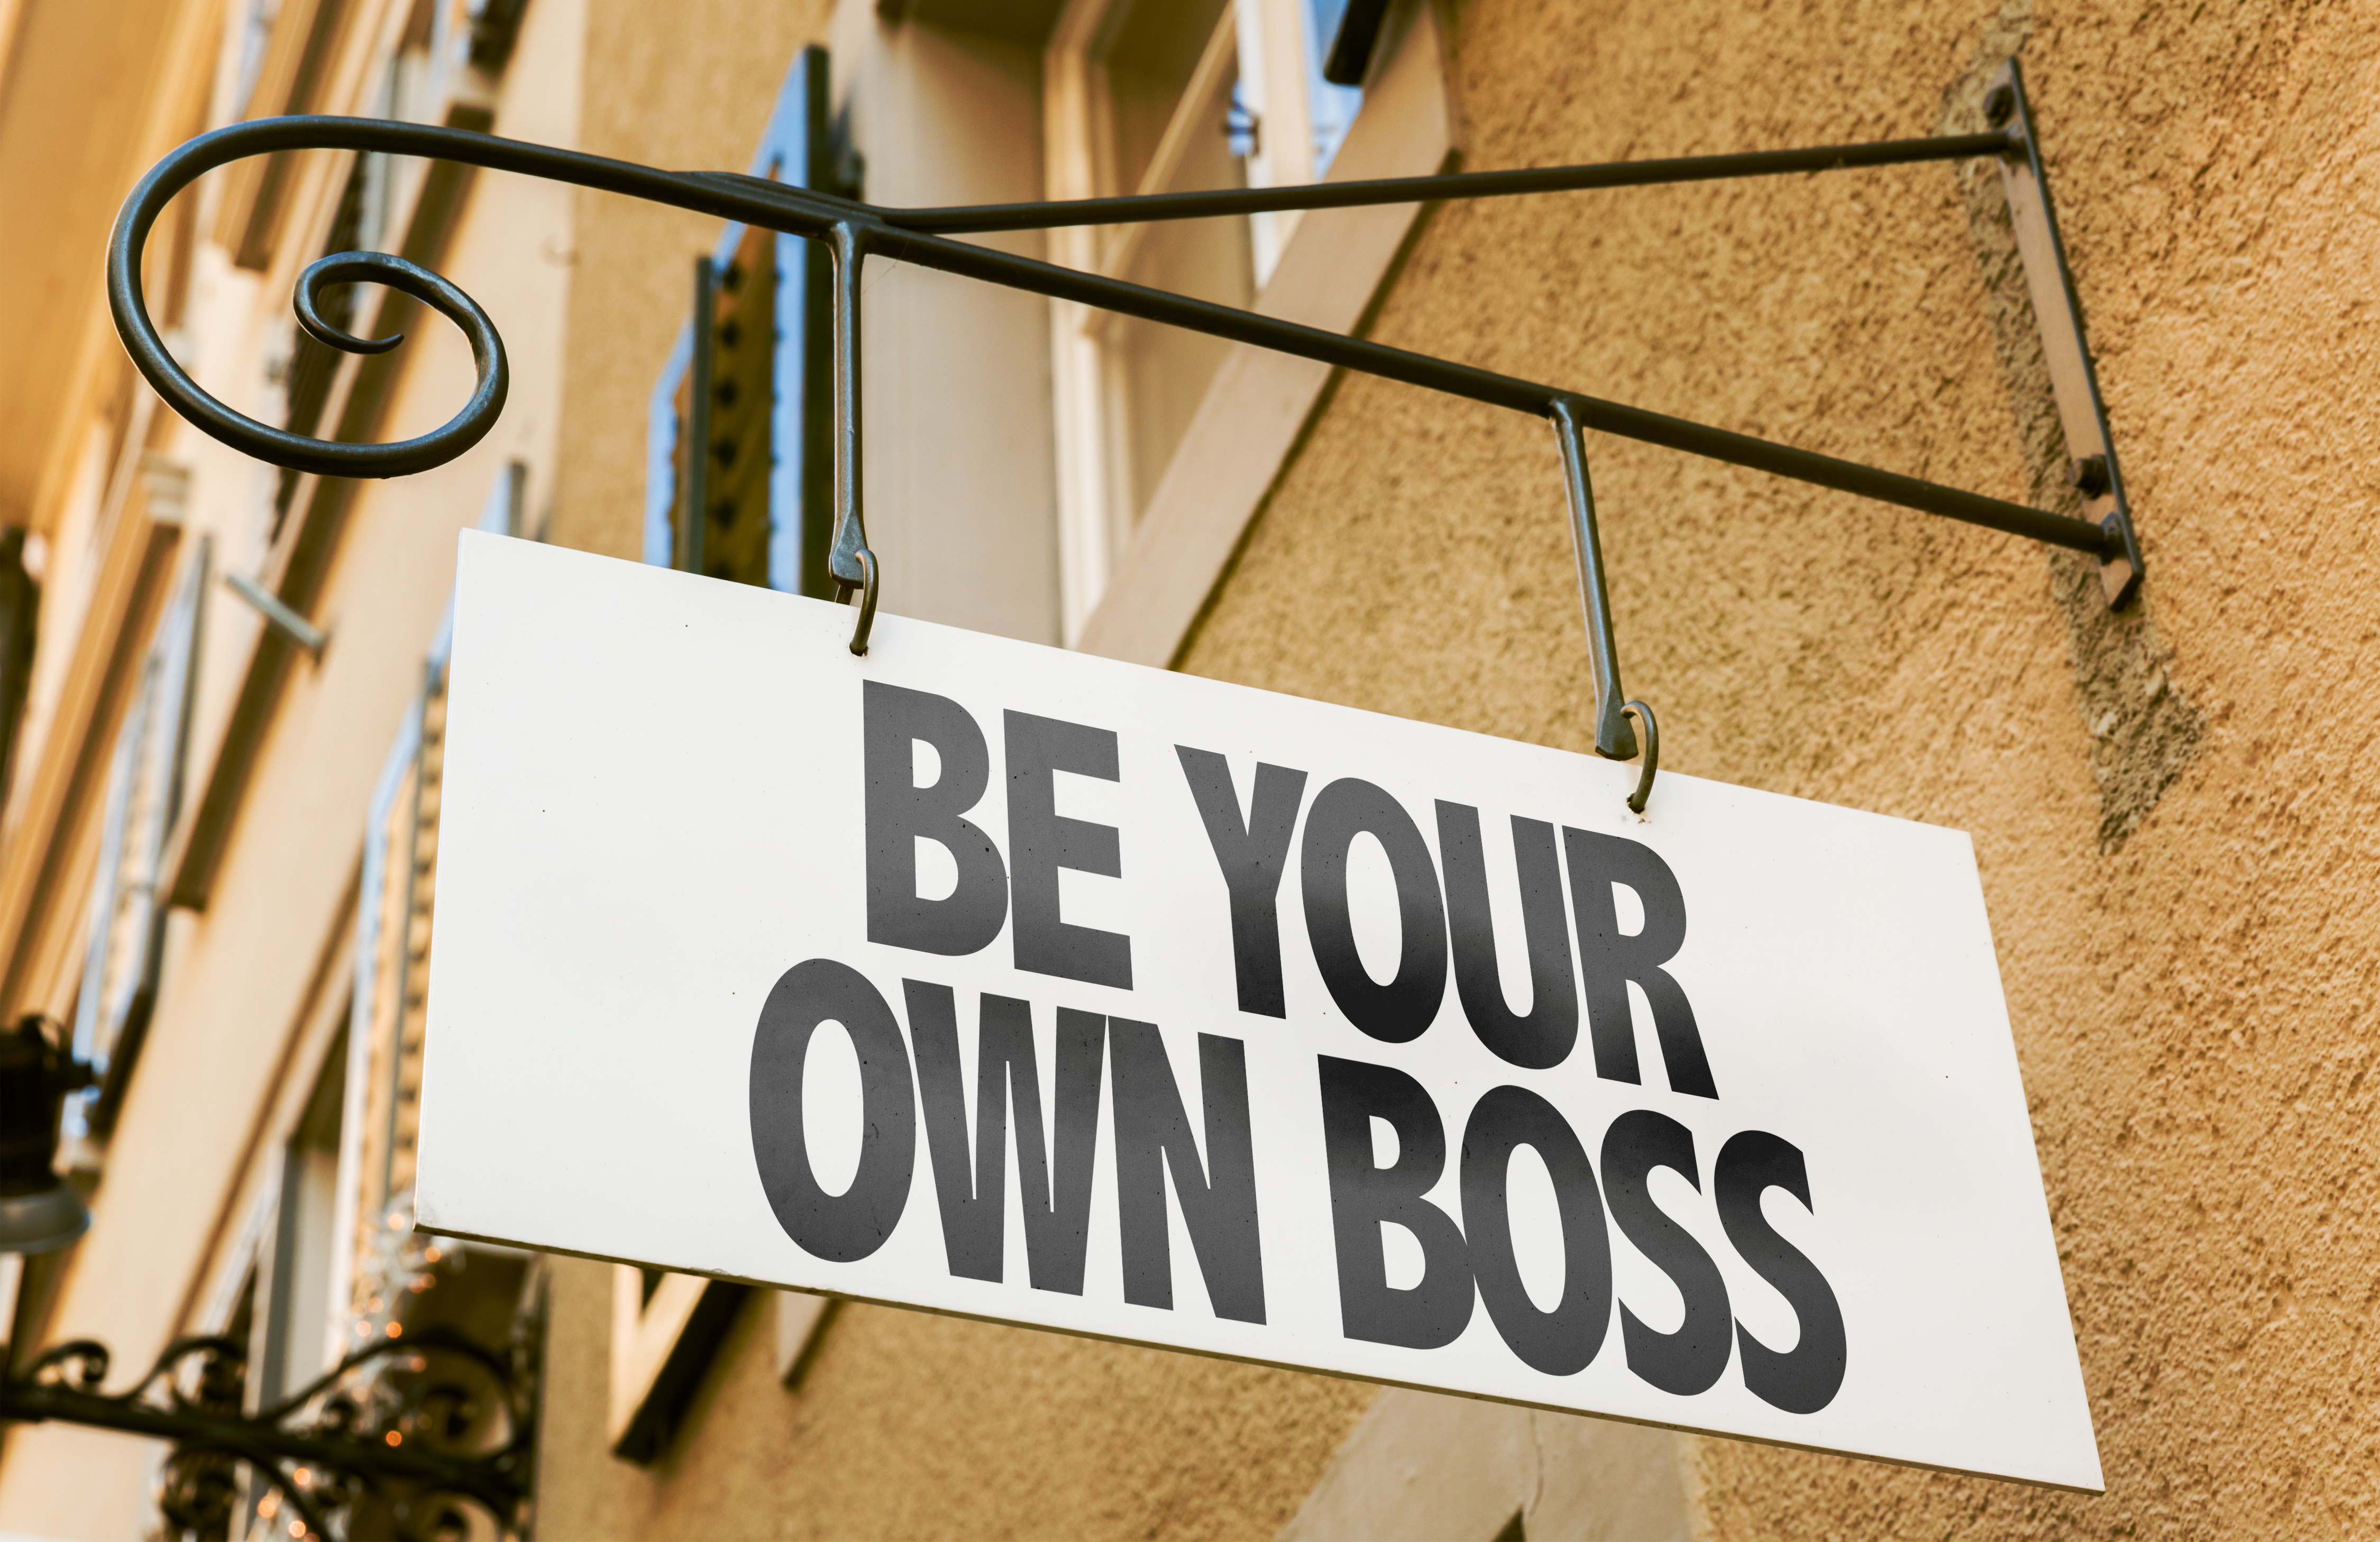 Be Your Own Boss sign in a conceptual image